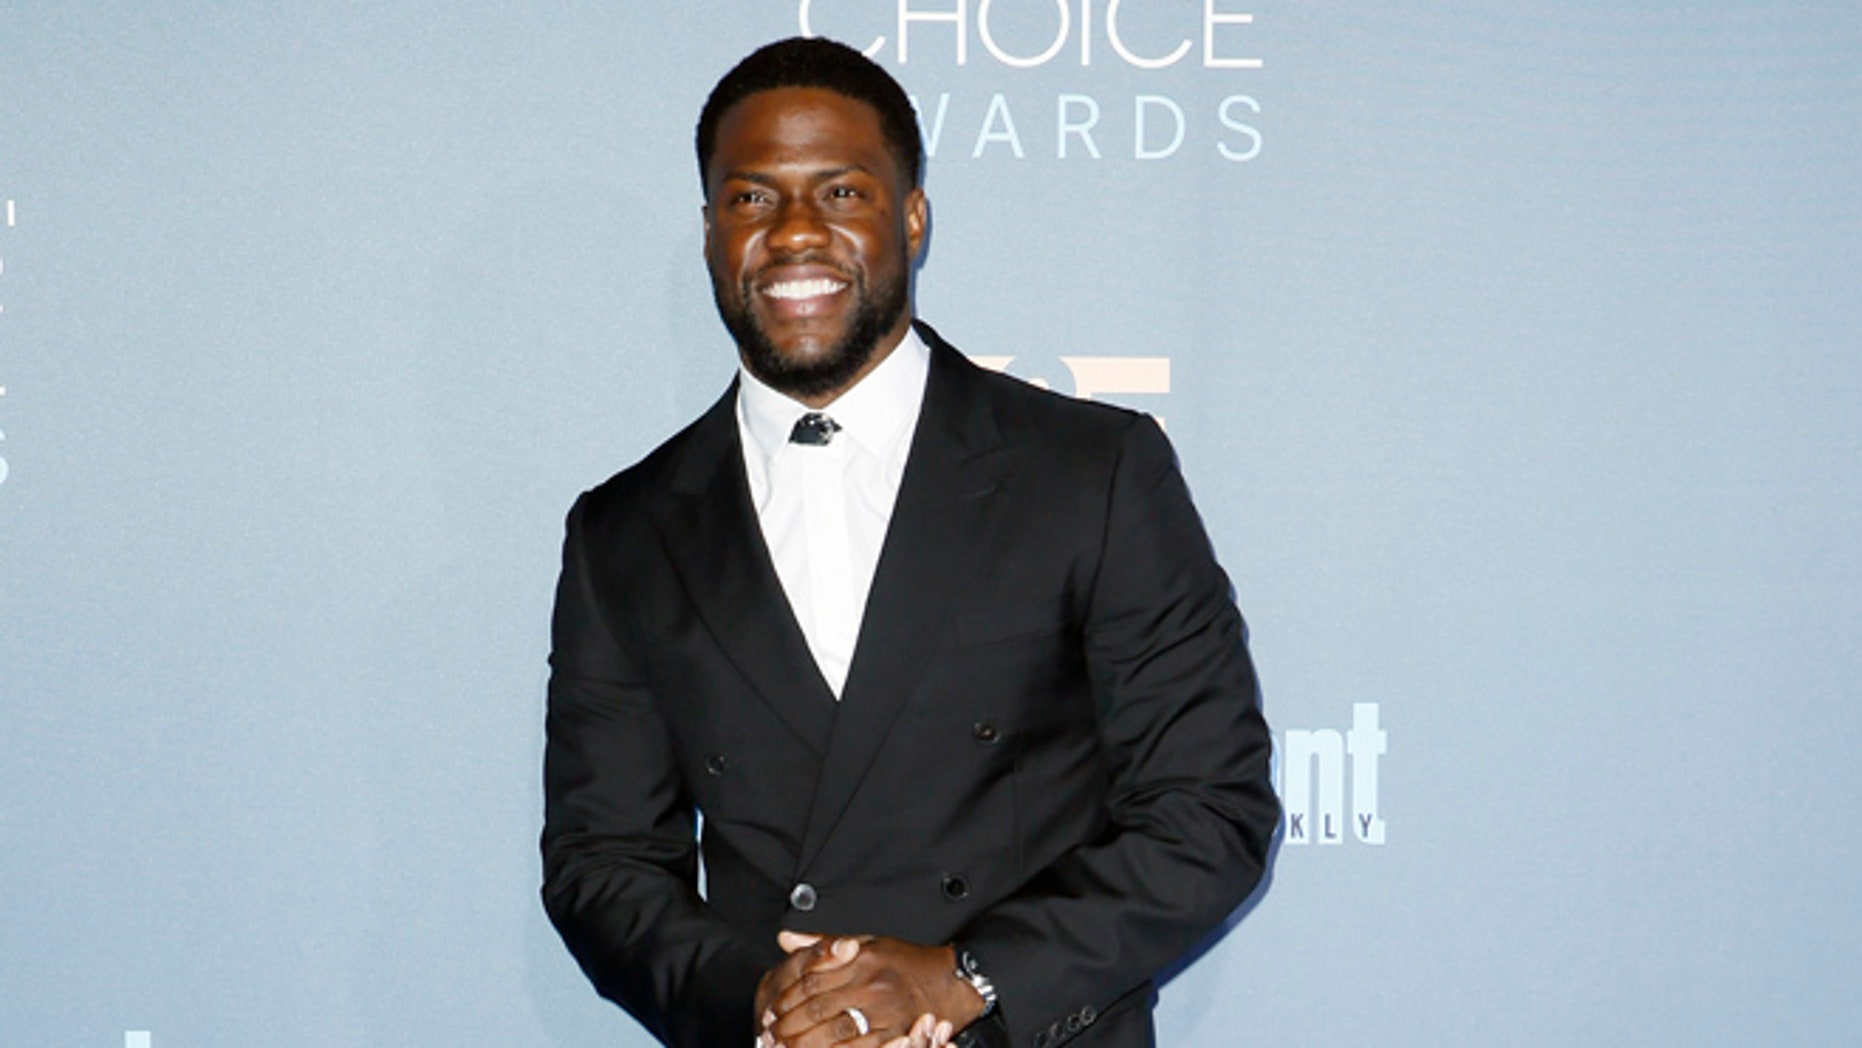 Kevin Hart explains why he never got used drugs.